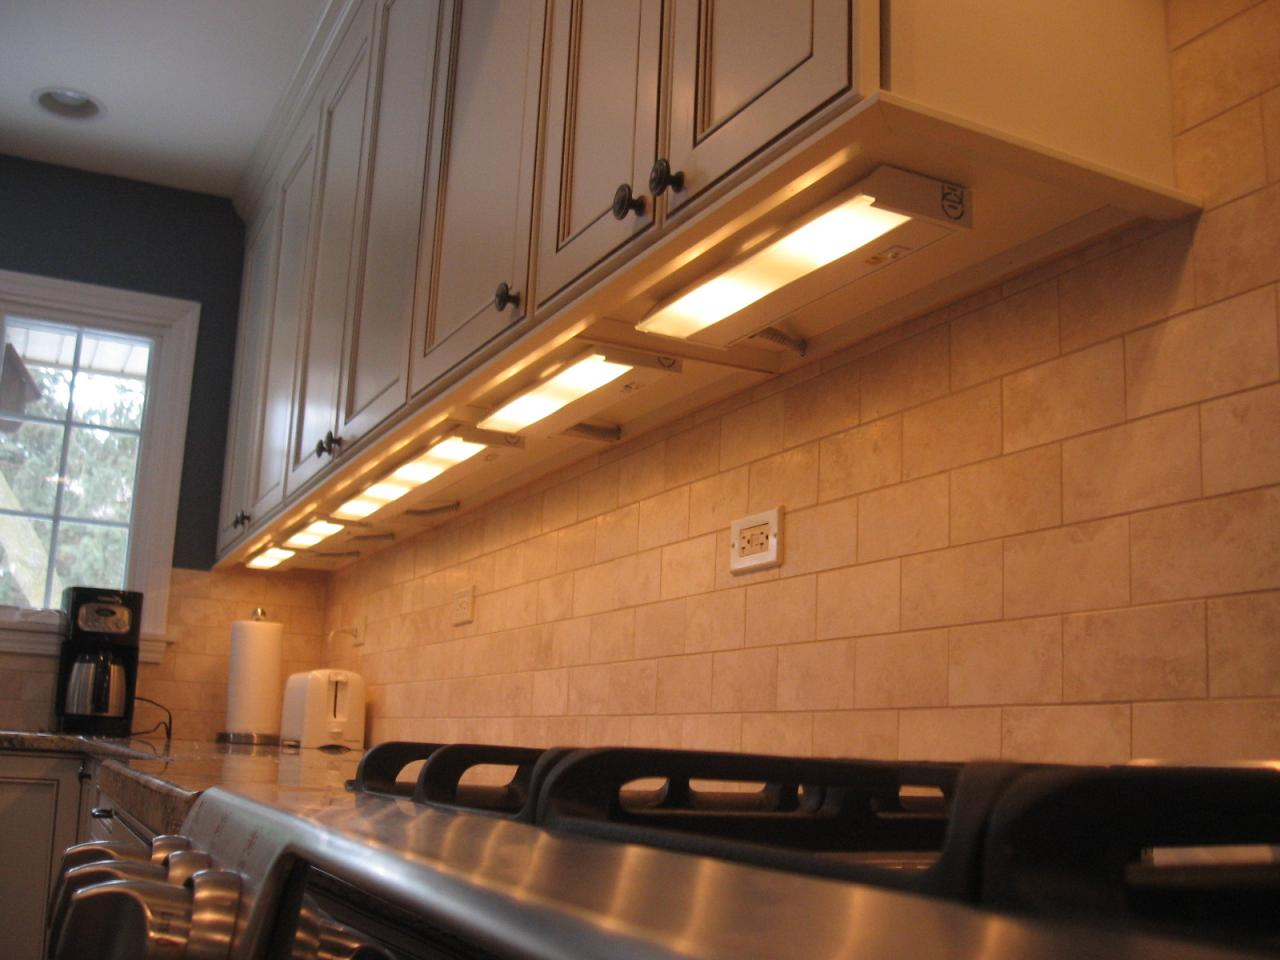 undercabinetlighting0.JPG